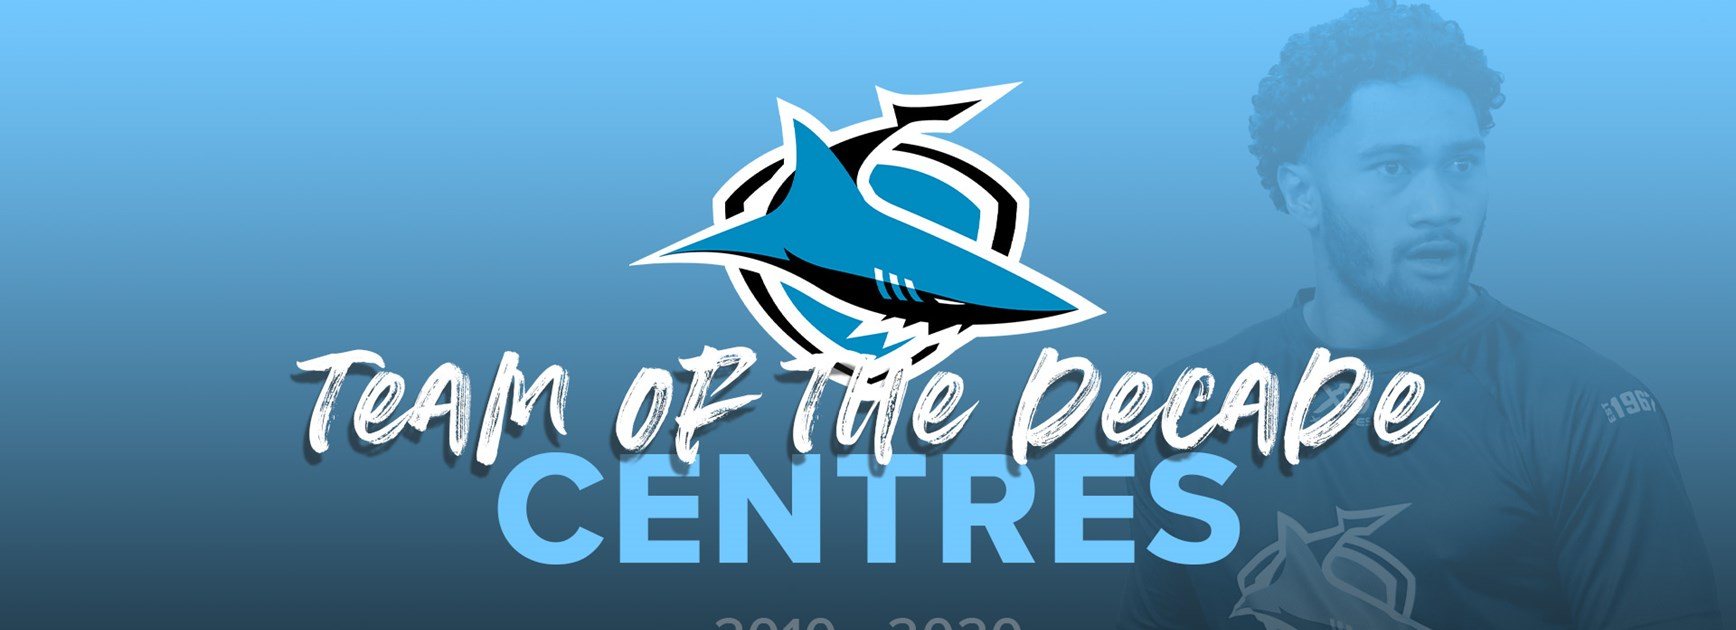 Sharks Team of the Decade – 2010-2020 - Centres